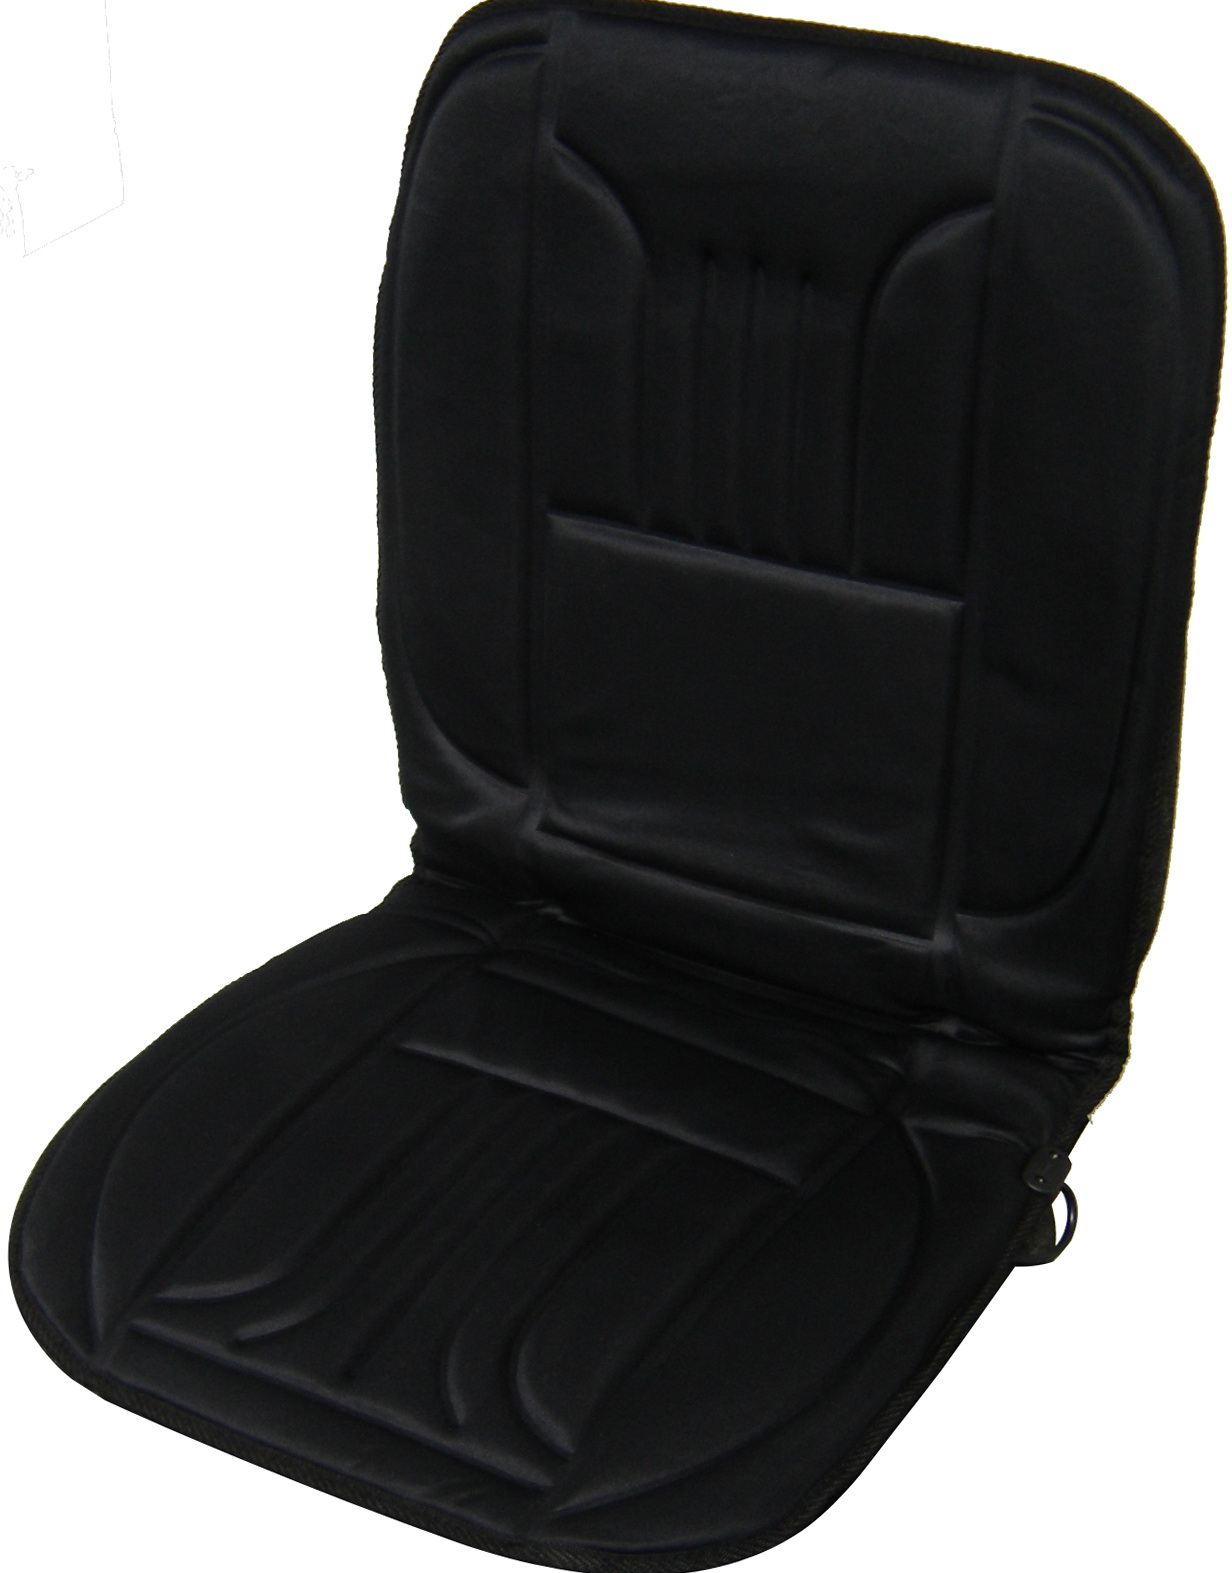 Heated Car Seat Cushion Walmart